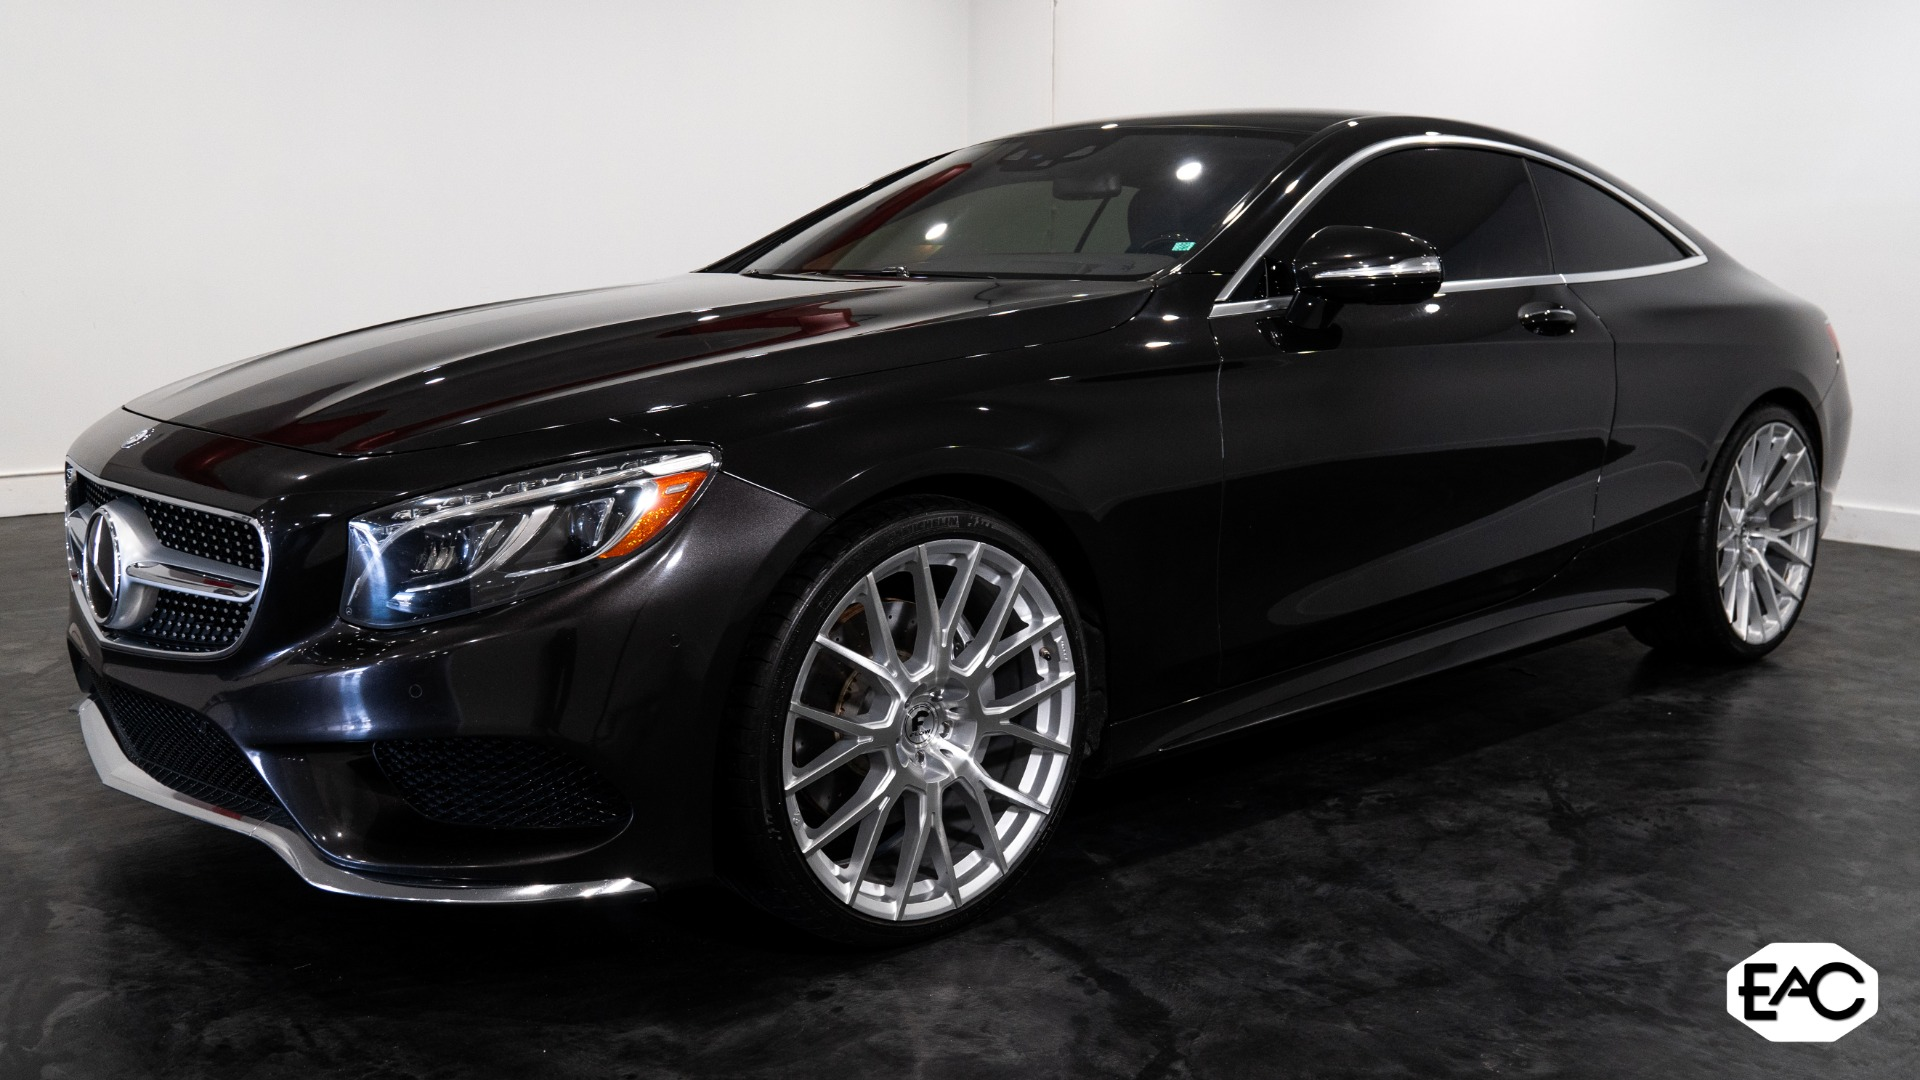 Used 2015 Mercedes-Benz S-Class S 550 4MATIC for sale Sold at Empire Auto Collection in Warren MI 48091 1